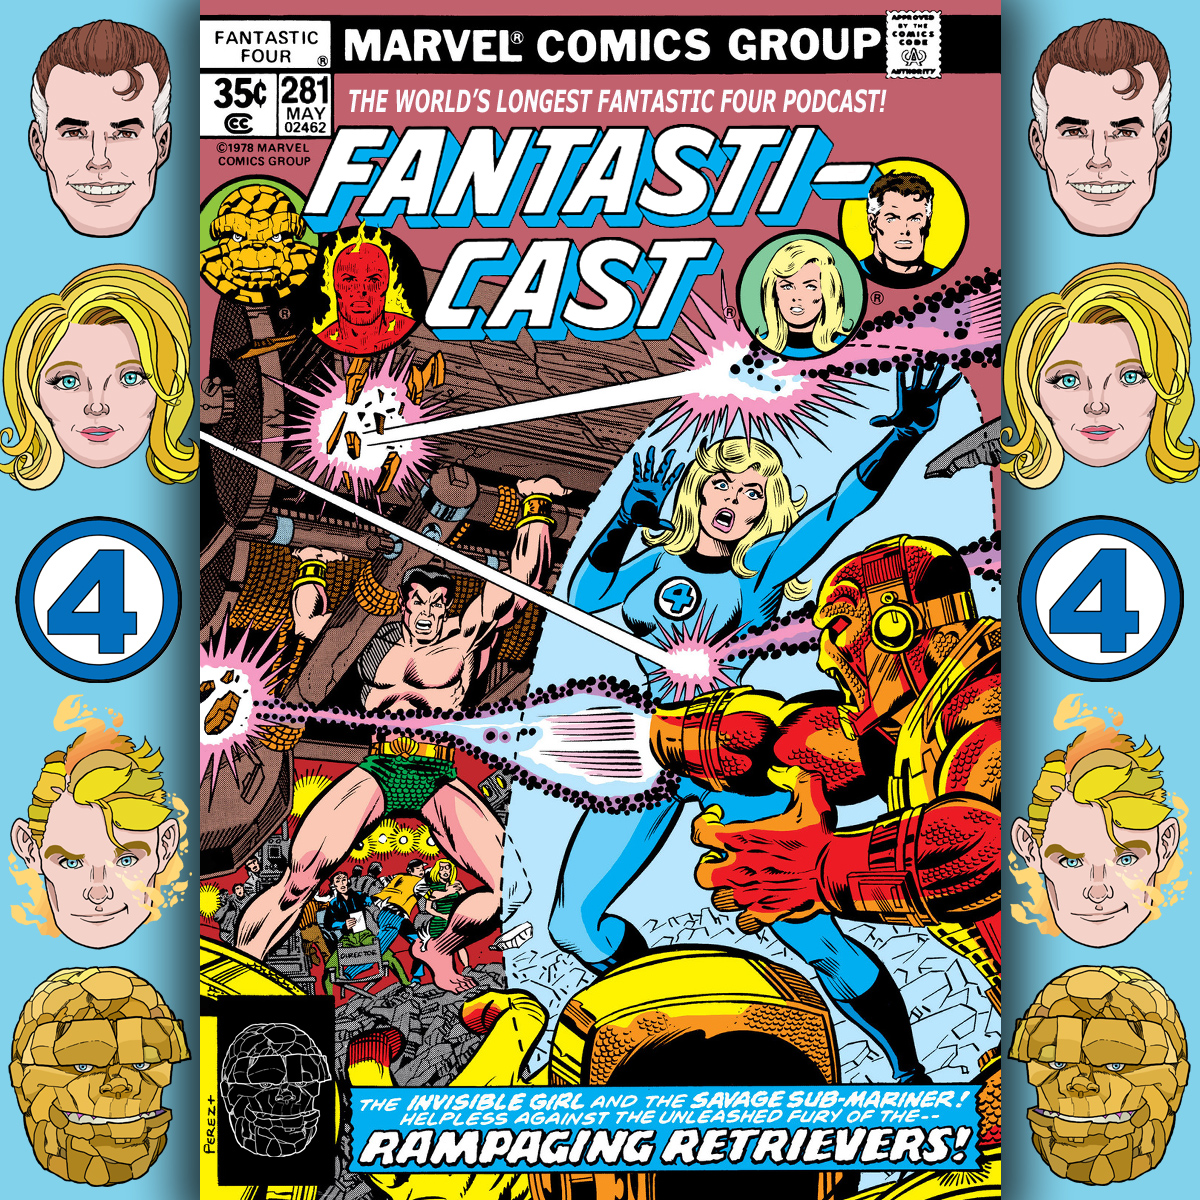 The Fantasticast Episode 281